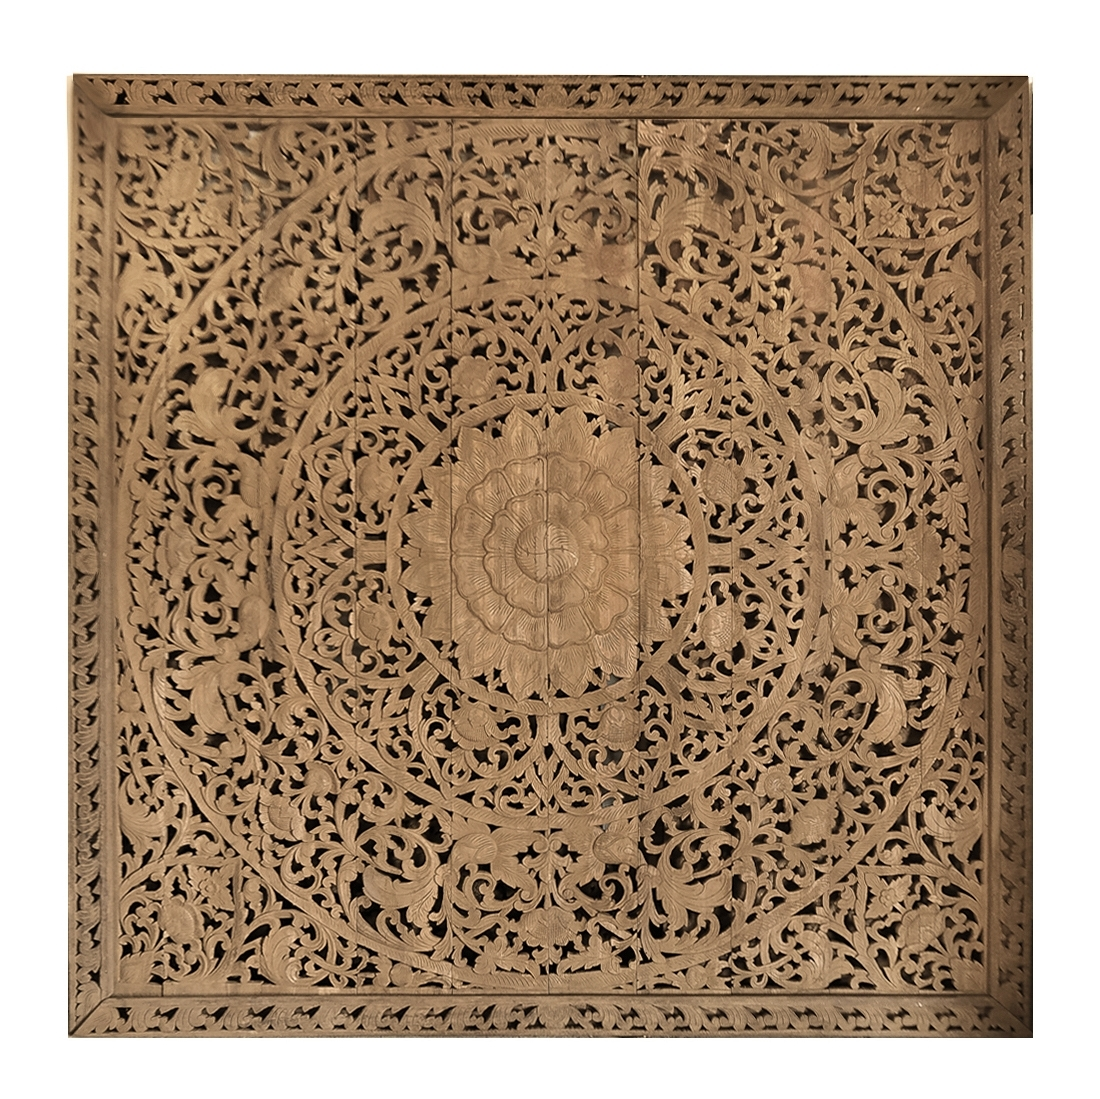 Wood Carved Wall Art Panels Throughout Current Large Grand Carved Wooden Wall Art Or Ceiling Panel – Siam Sawadee (View 14 of 15)